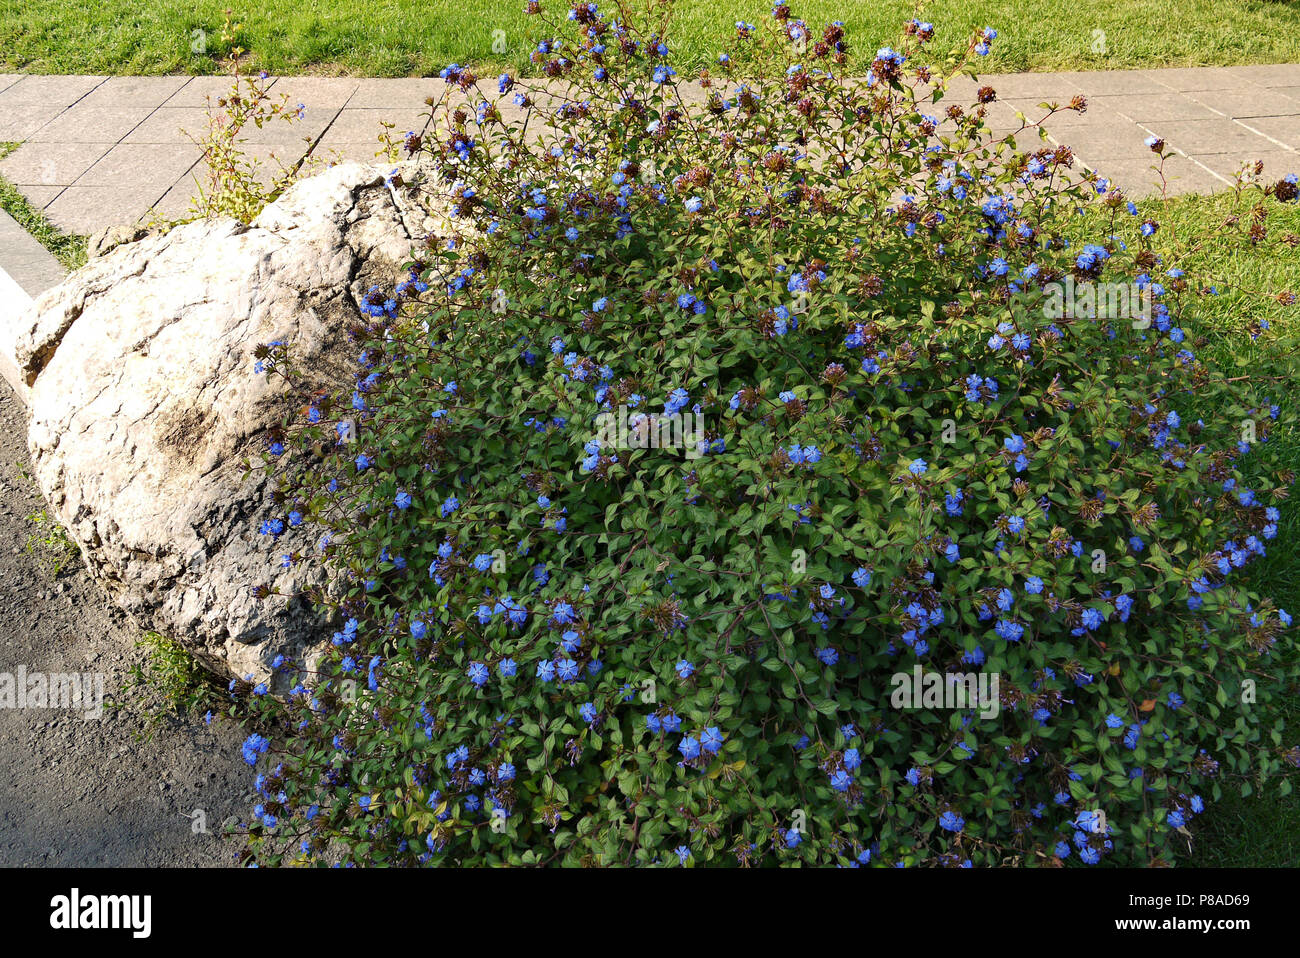 Shrub With Small Beautiful Blue Flowers And Green Leaves In The Rays Of The Summer Sun Grew On A Stone For Your Design Stock Photo Alamy